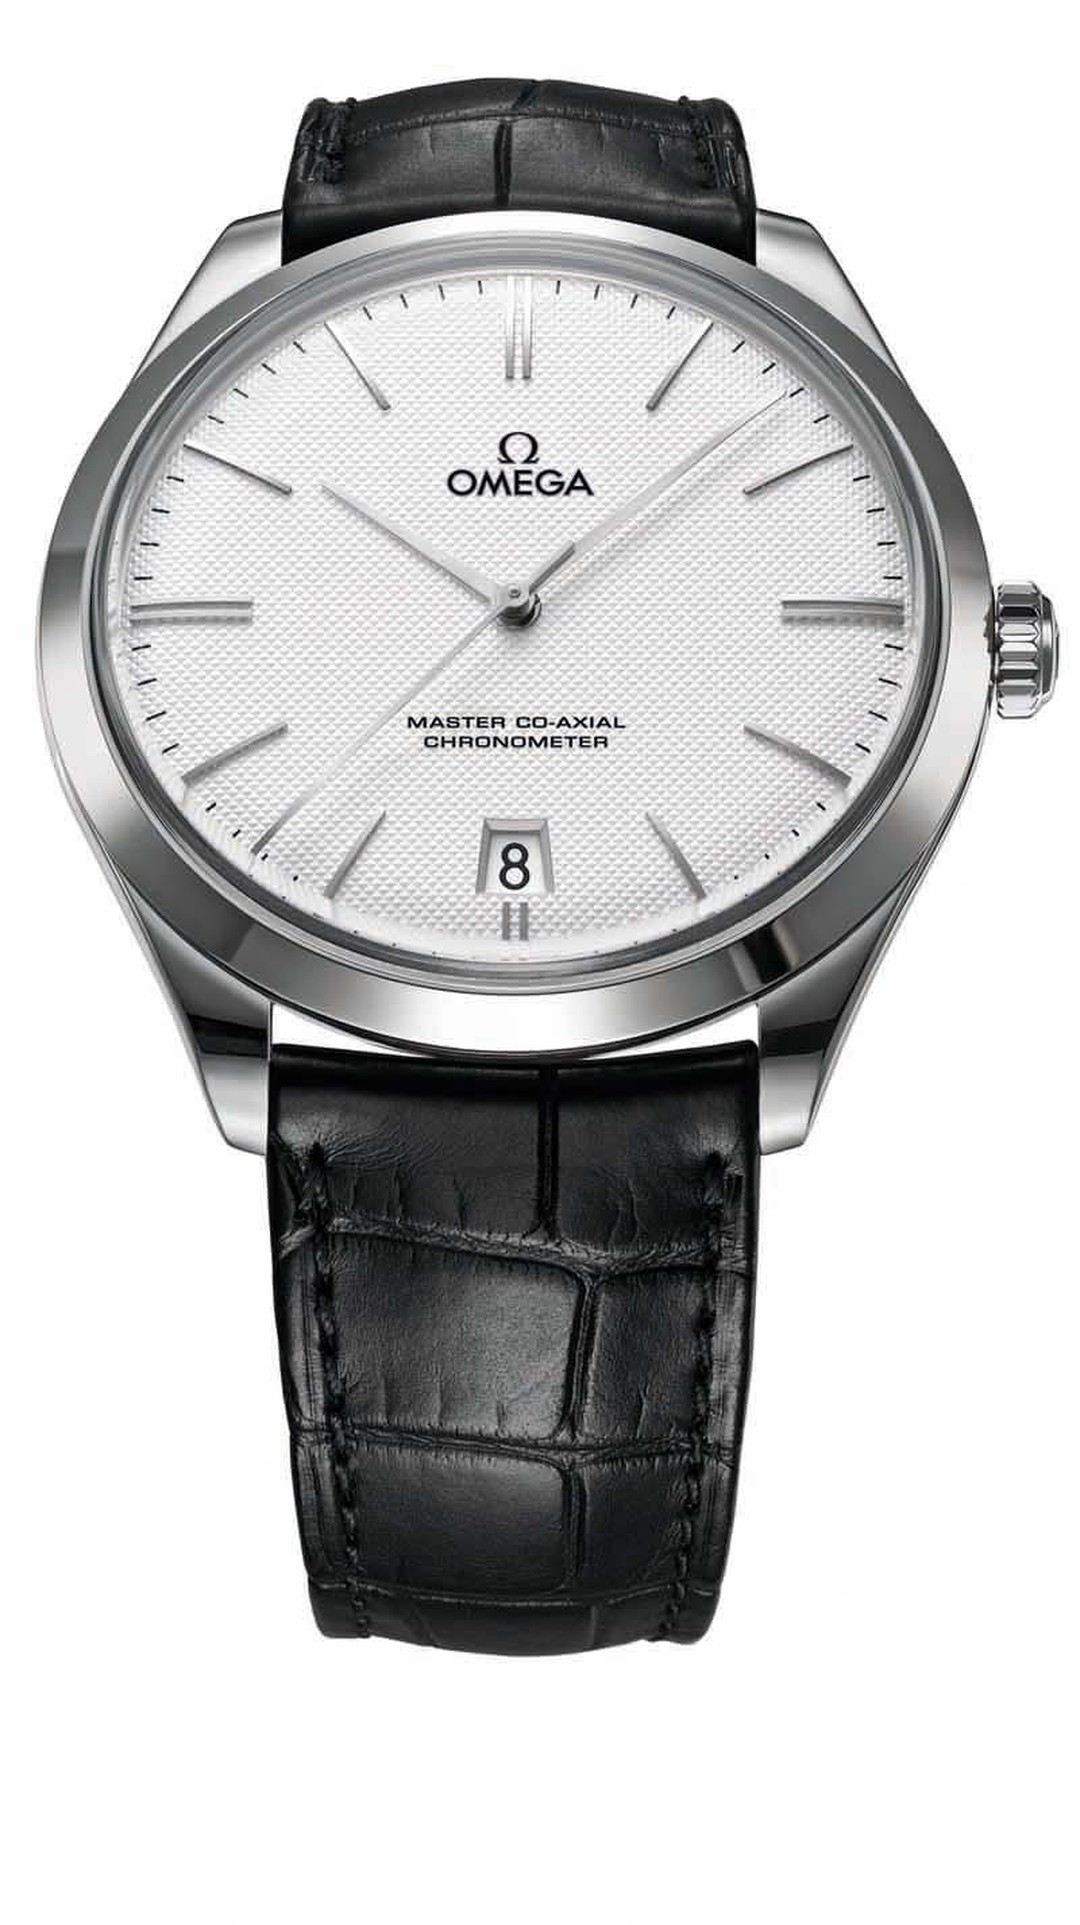 The Omega De Ville Trésor watch worn by George Clooney on his wedding day is one of the most advanced Omega watches ever created.